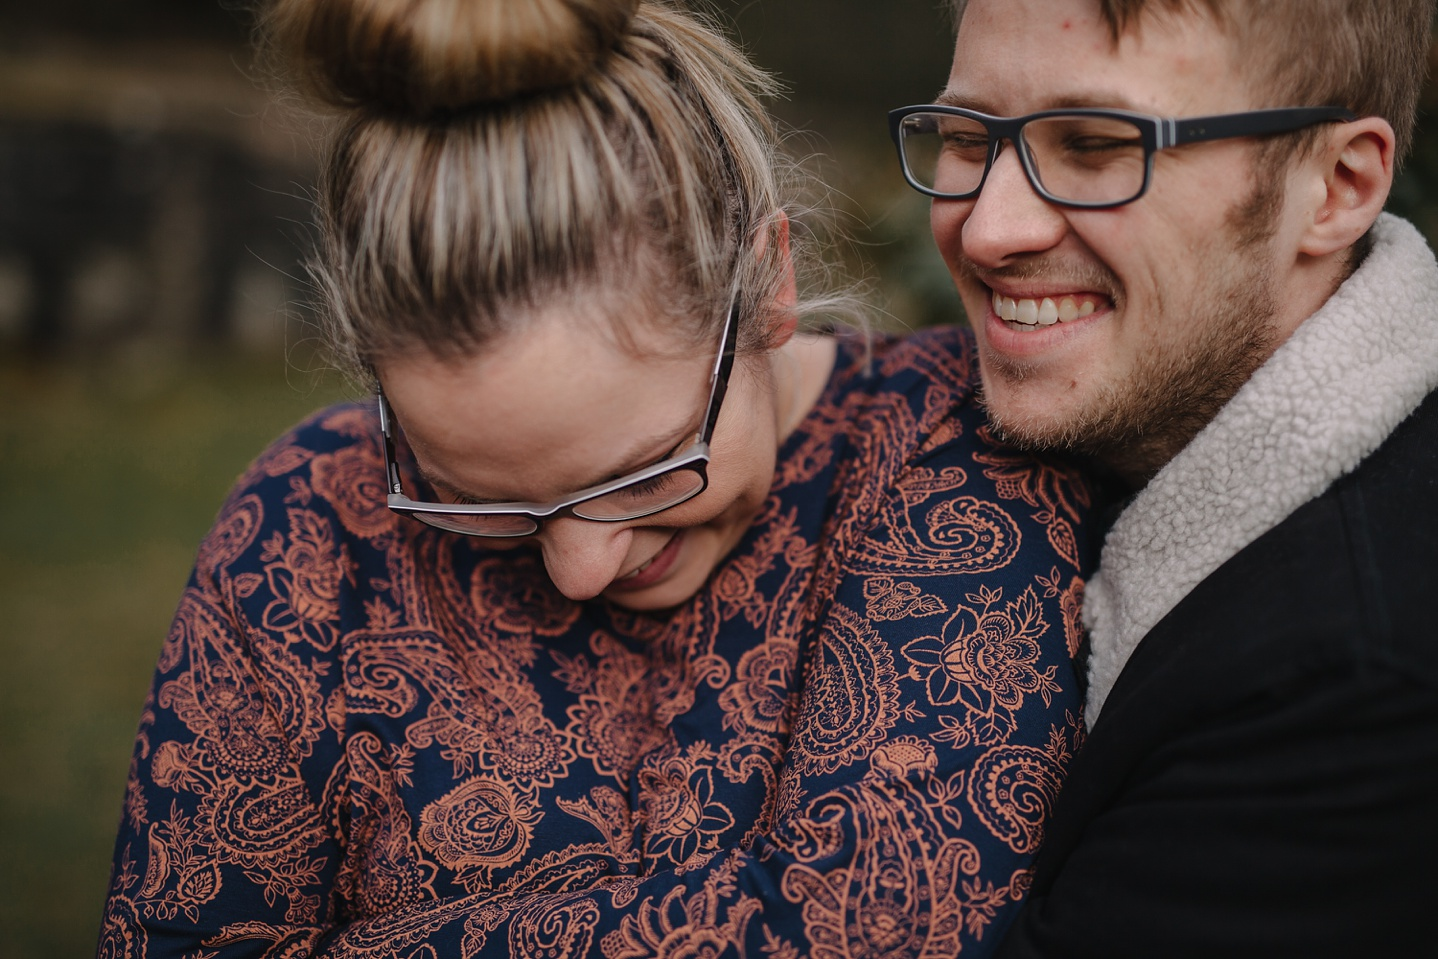 close up of man and woman laughing